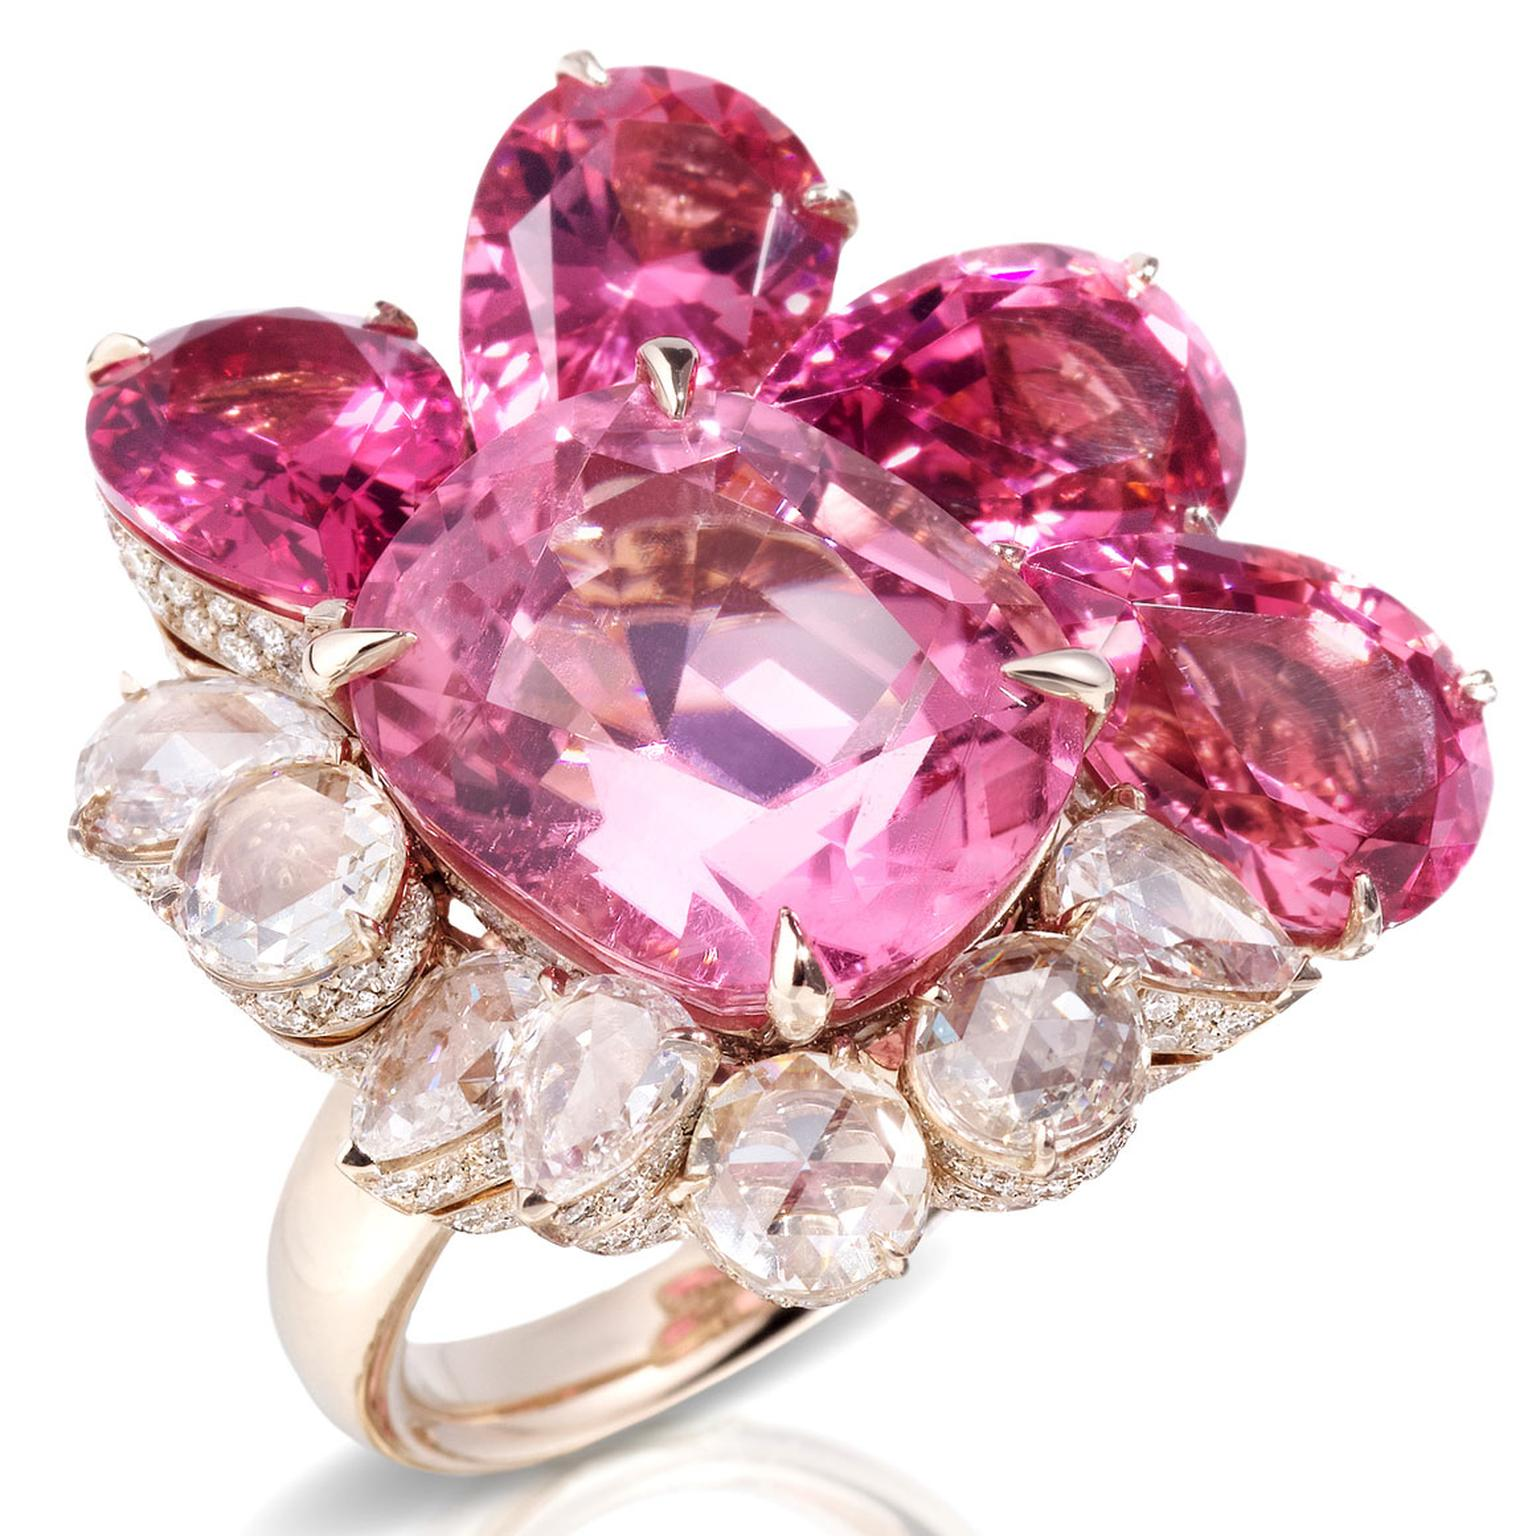 Pomellato Pom Pom London ring in white gold with pink tourmaline